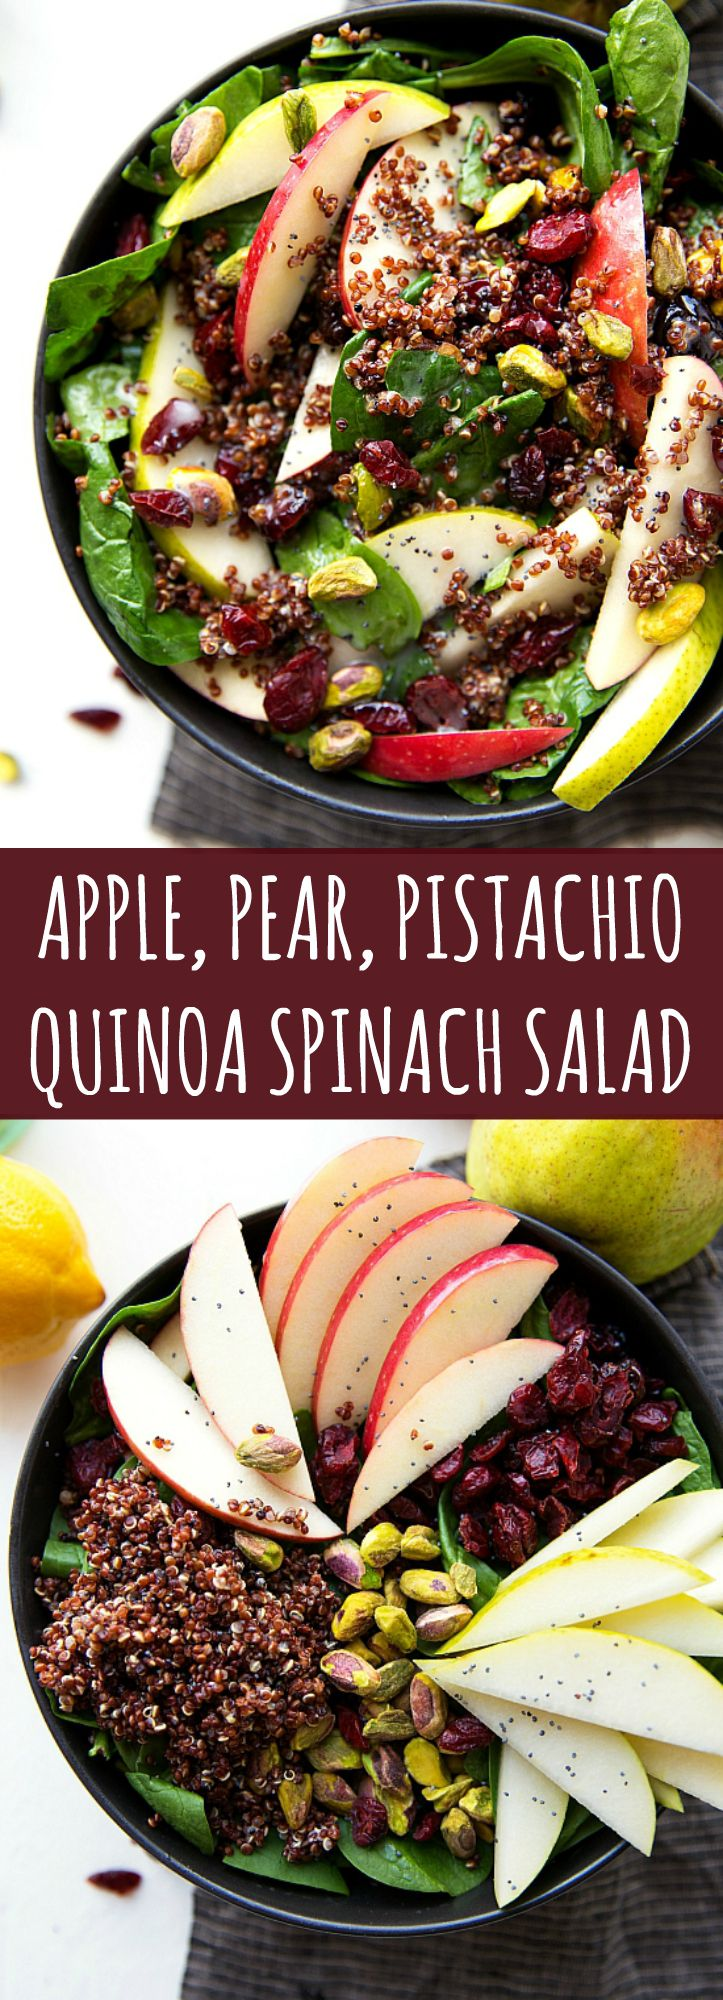 Delicious and simple Fall Salad -- Apple, Pear, Pistachio Quinoa Spinach Salad great for Thanksgiving!